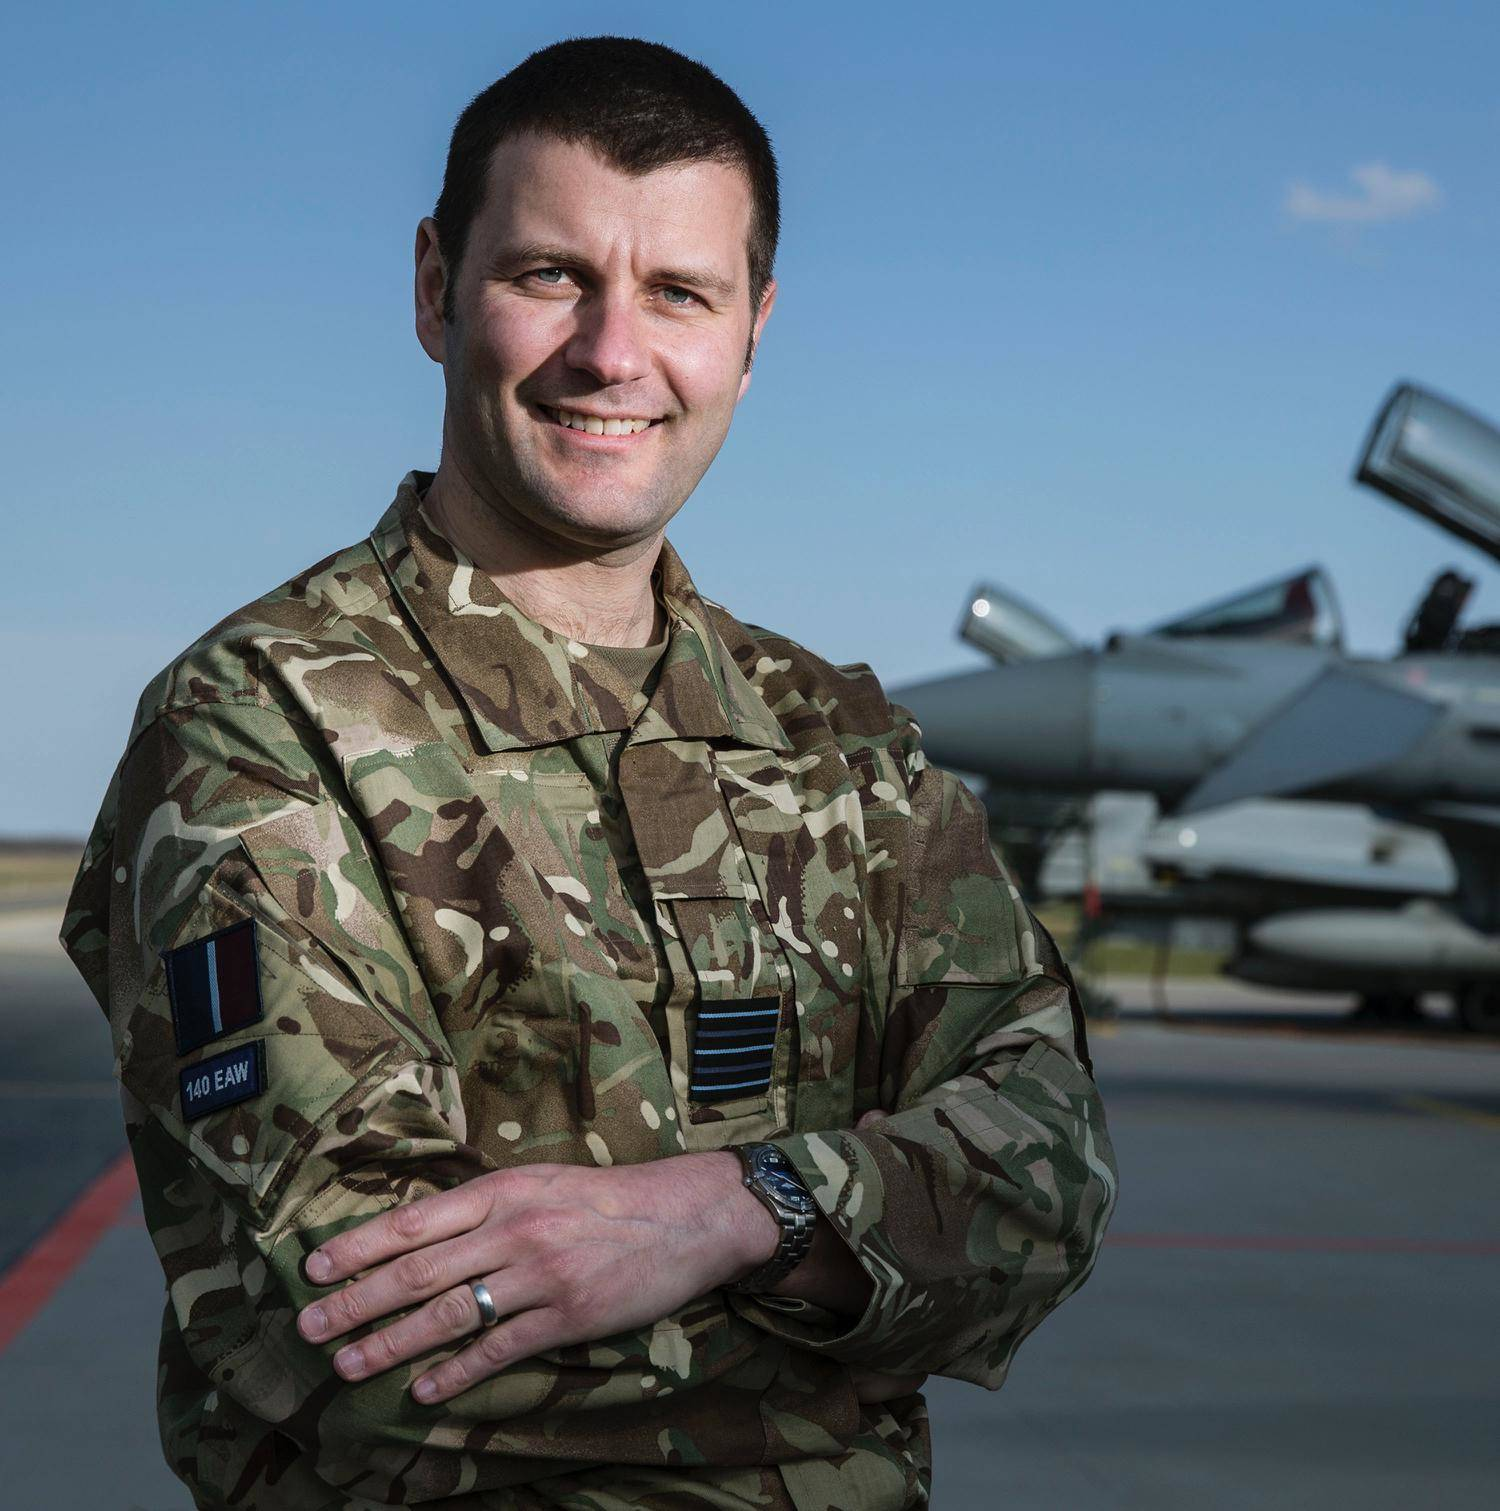 RAF Wing Commander Gordon Melville at the Ämari Air Base in Estonia. Photo: UK Ministry of Defence